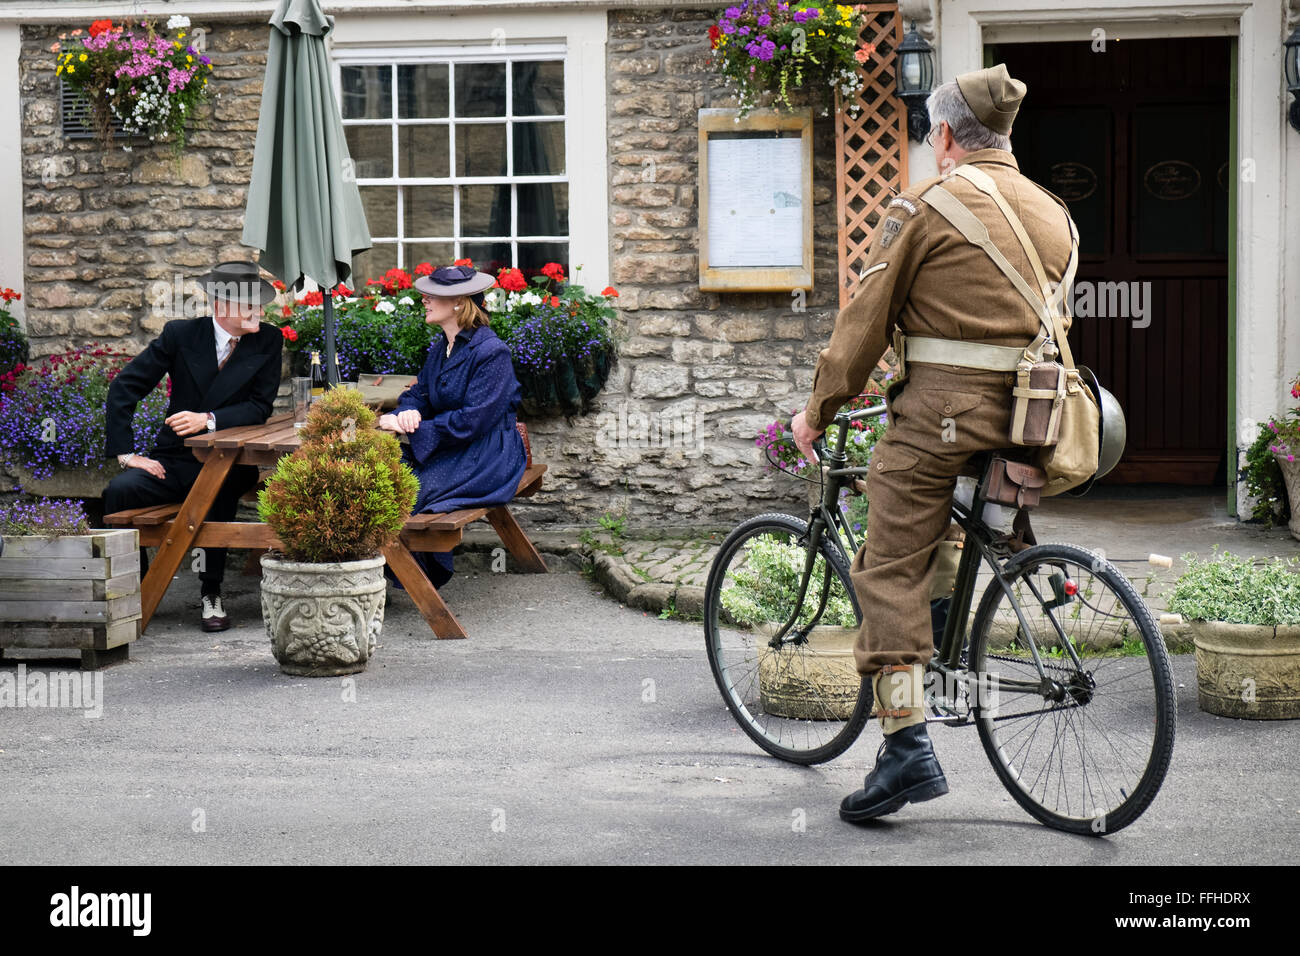 Participants in a Britain at war re-enactment day in WW2 period 1940's dress, outside a pub in the United Kingdom - Stock Image